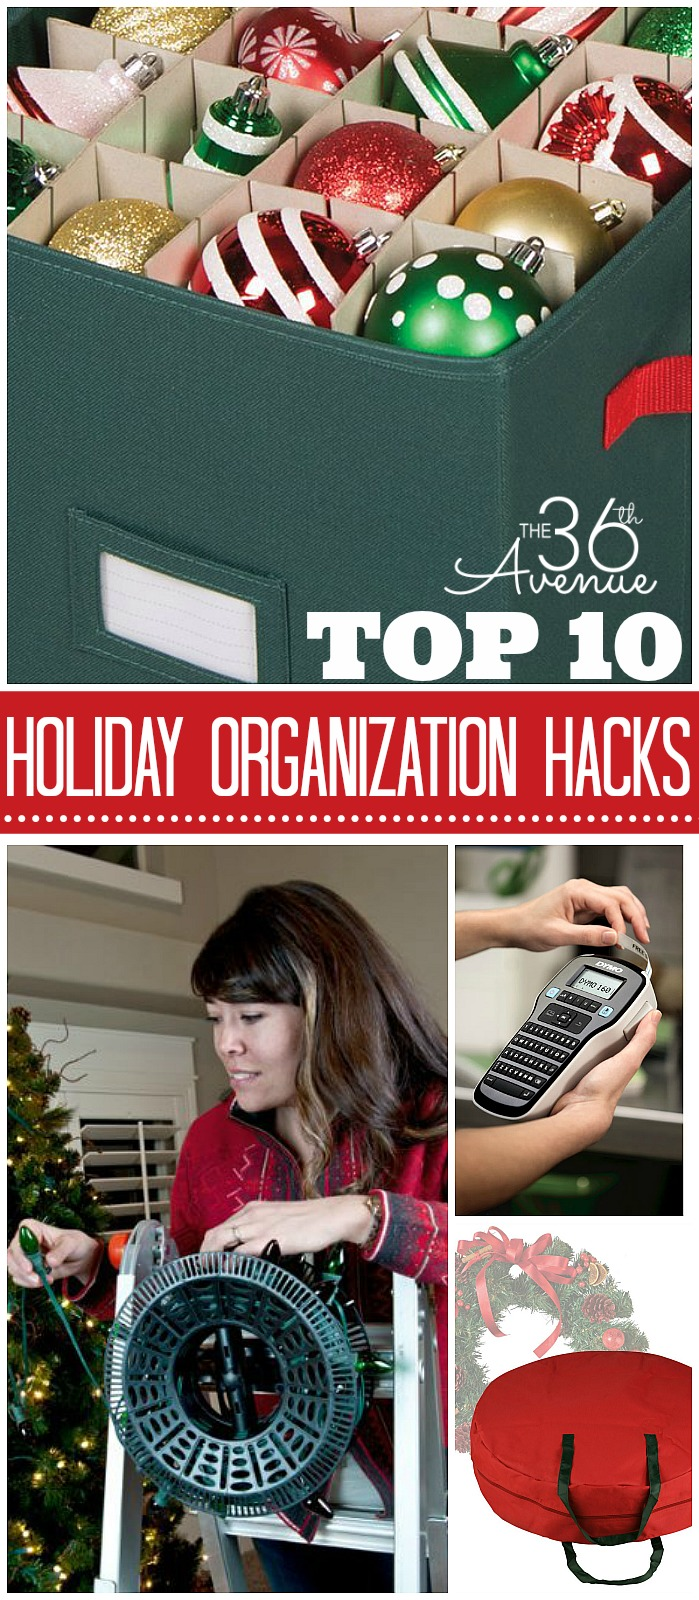 Top 10 Holiday Organization Hacks and Gadgets at the36thavenue.com #organization